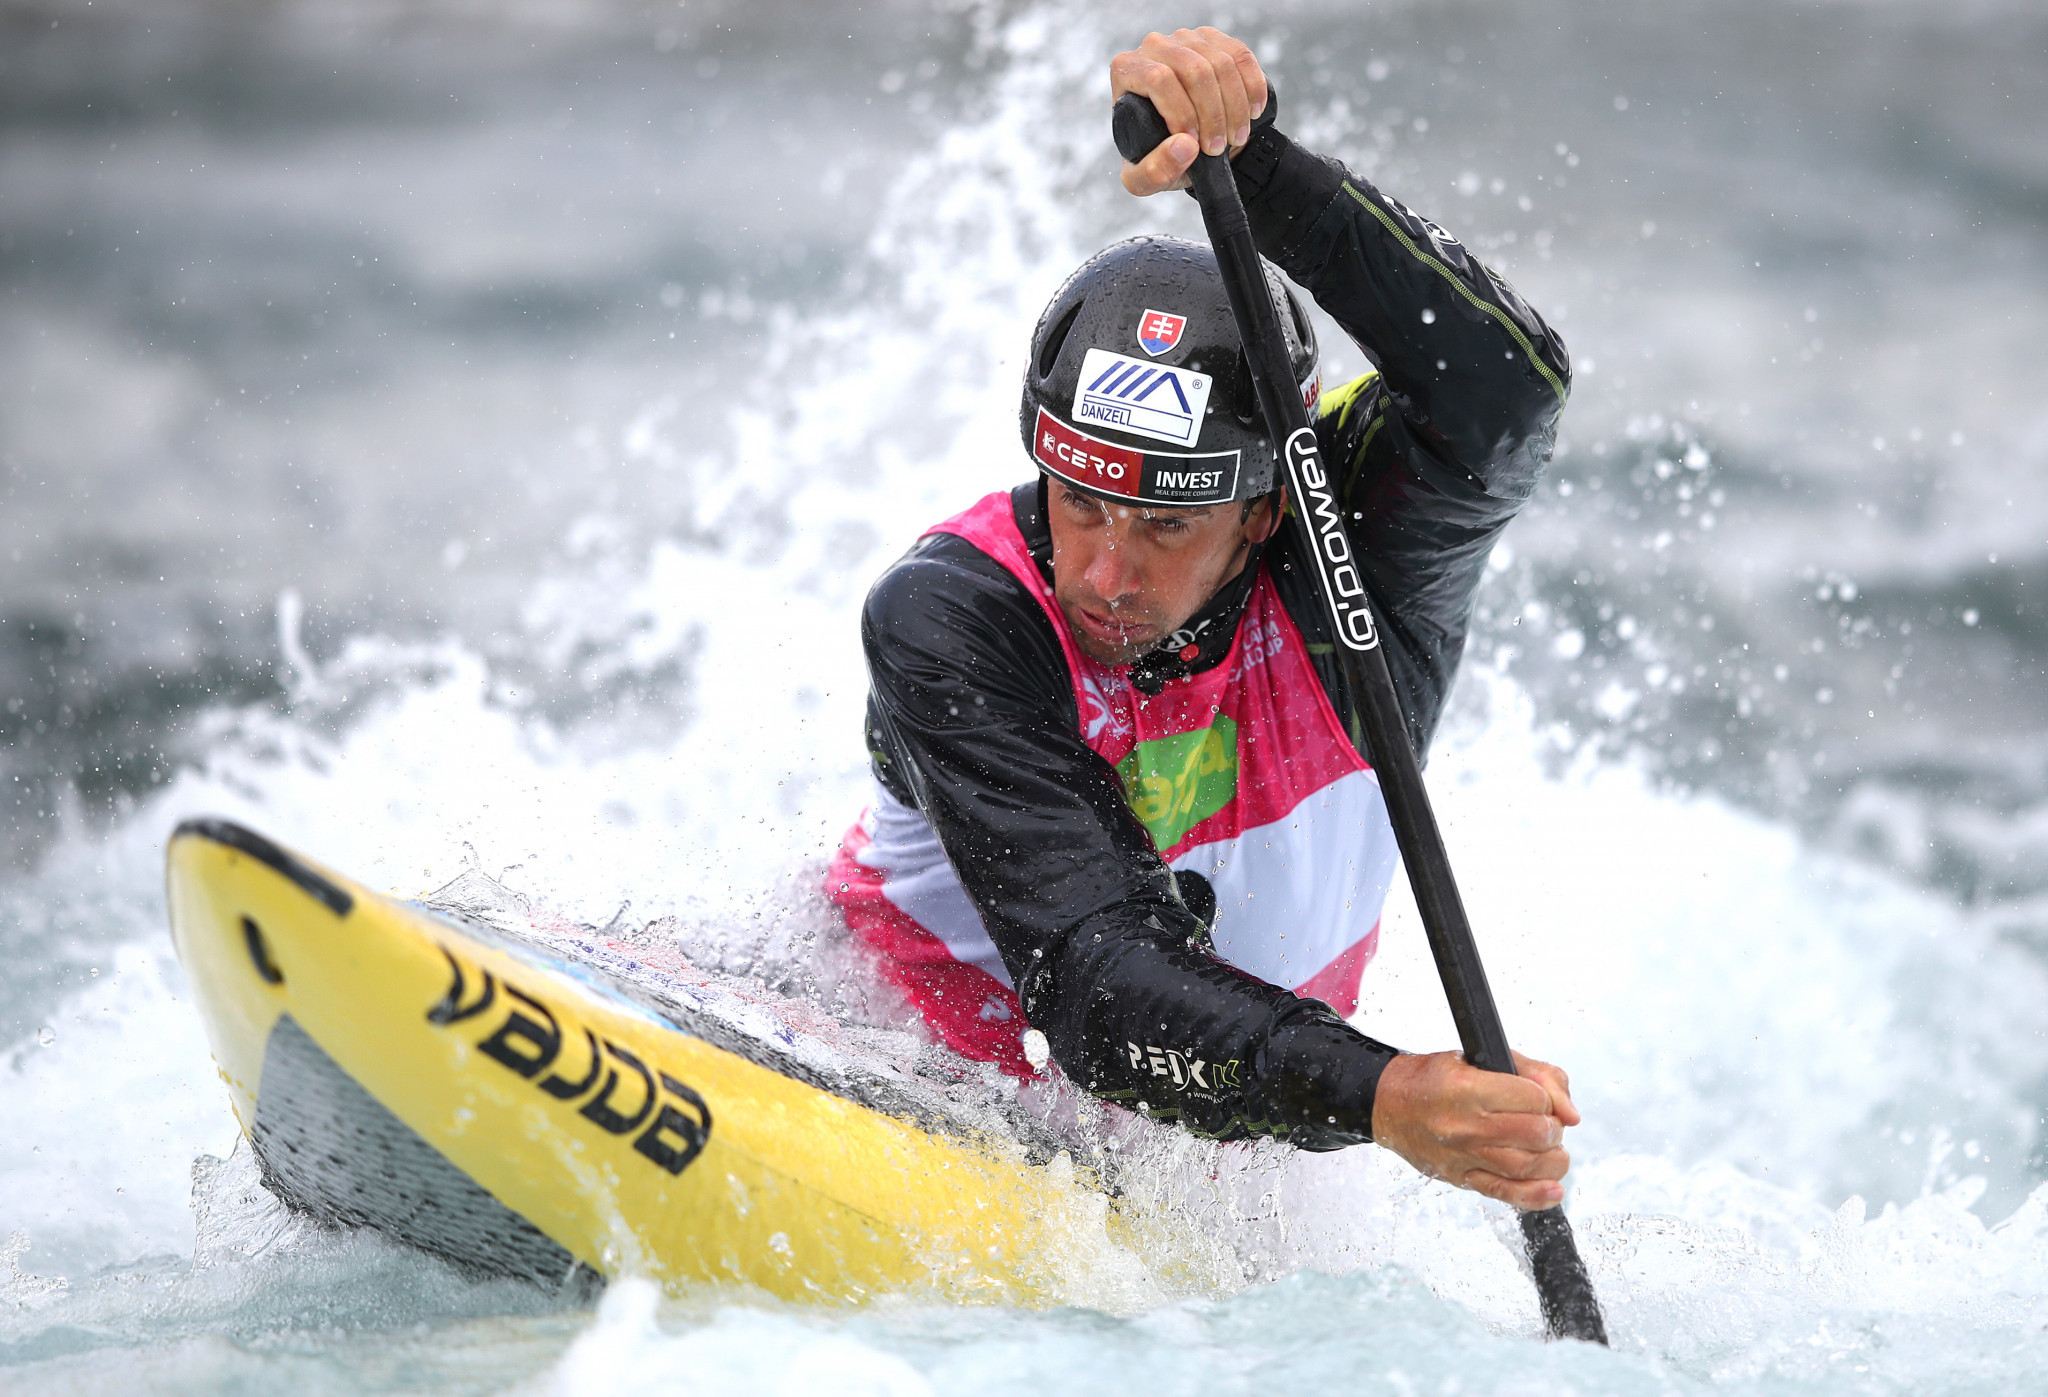 Ten-time world champion canoeist Alexander Slafkovský claimed the ability for athletes to train is essential for the Games to go ahead ©Getty Images